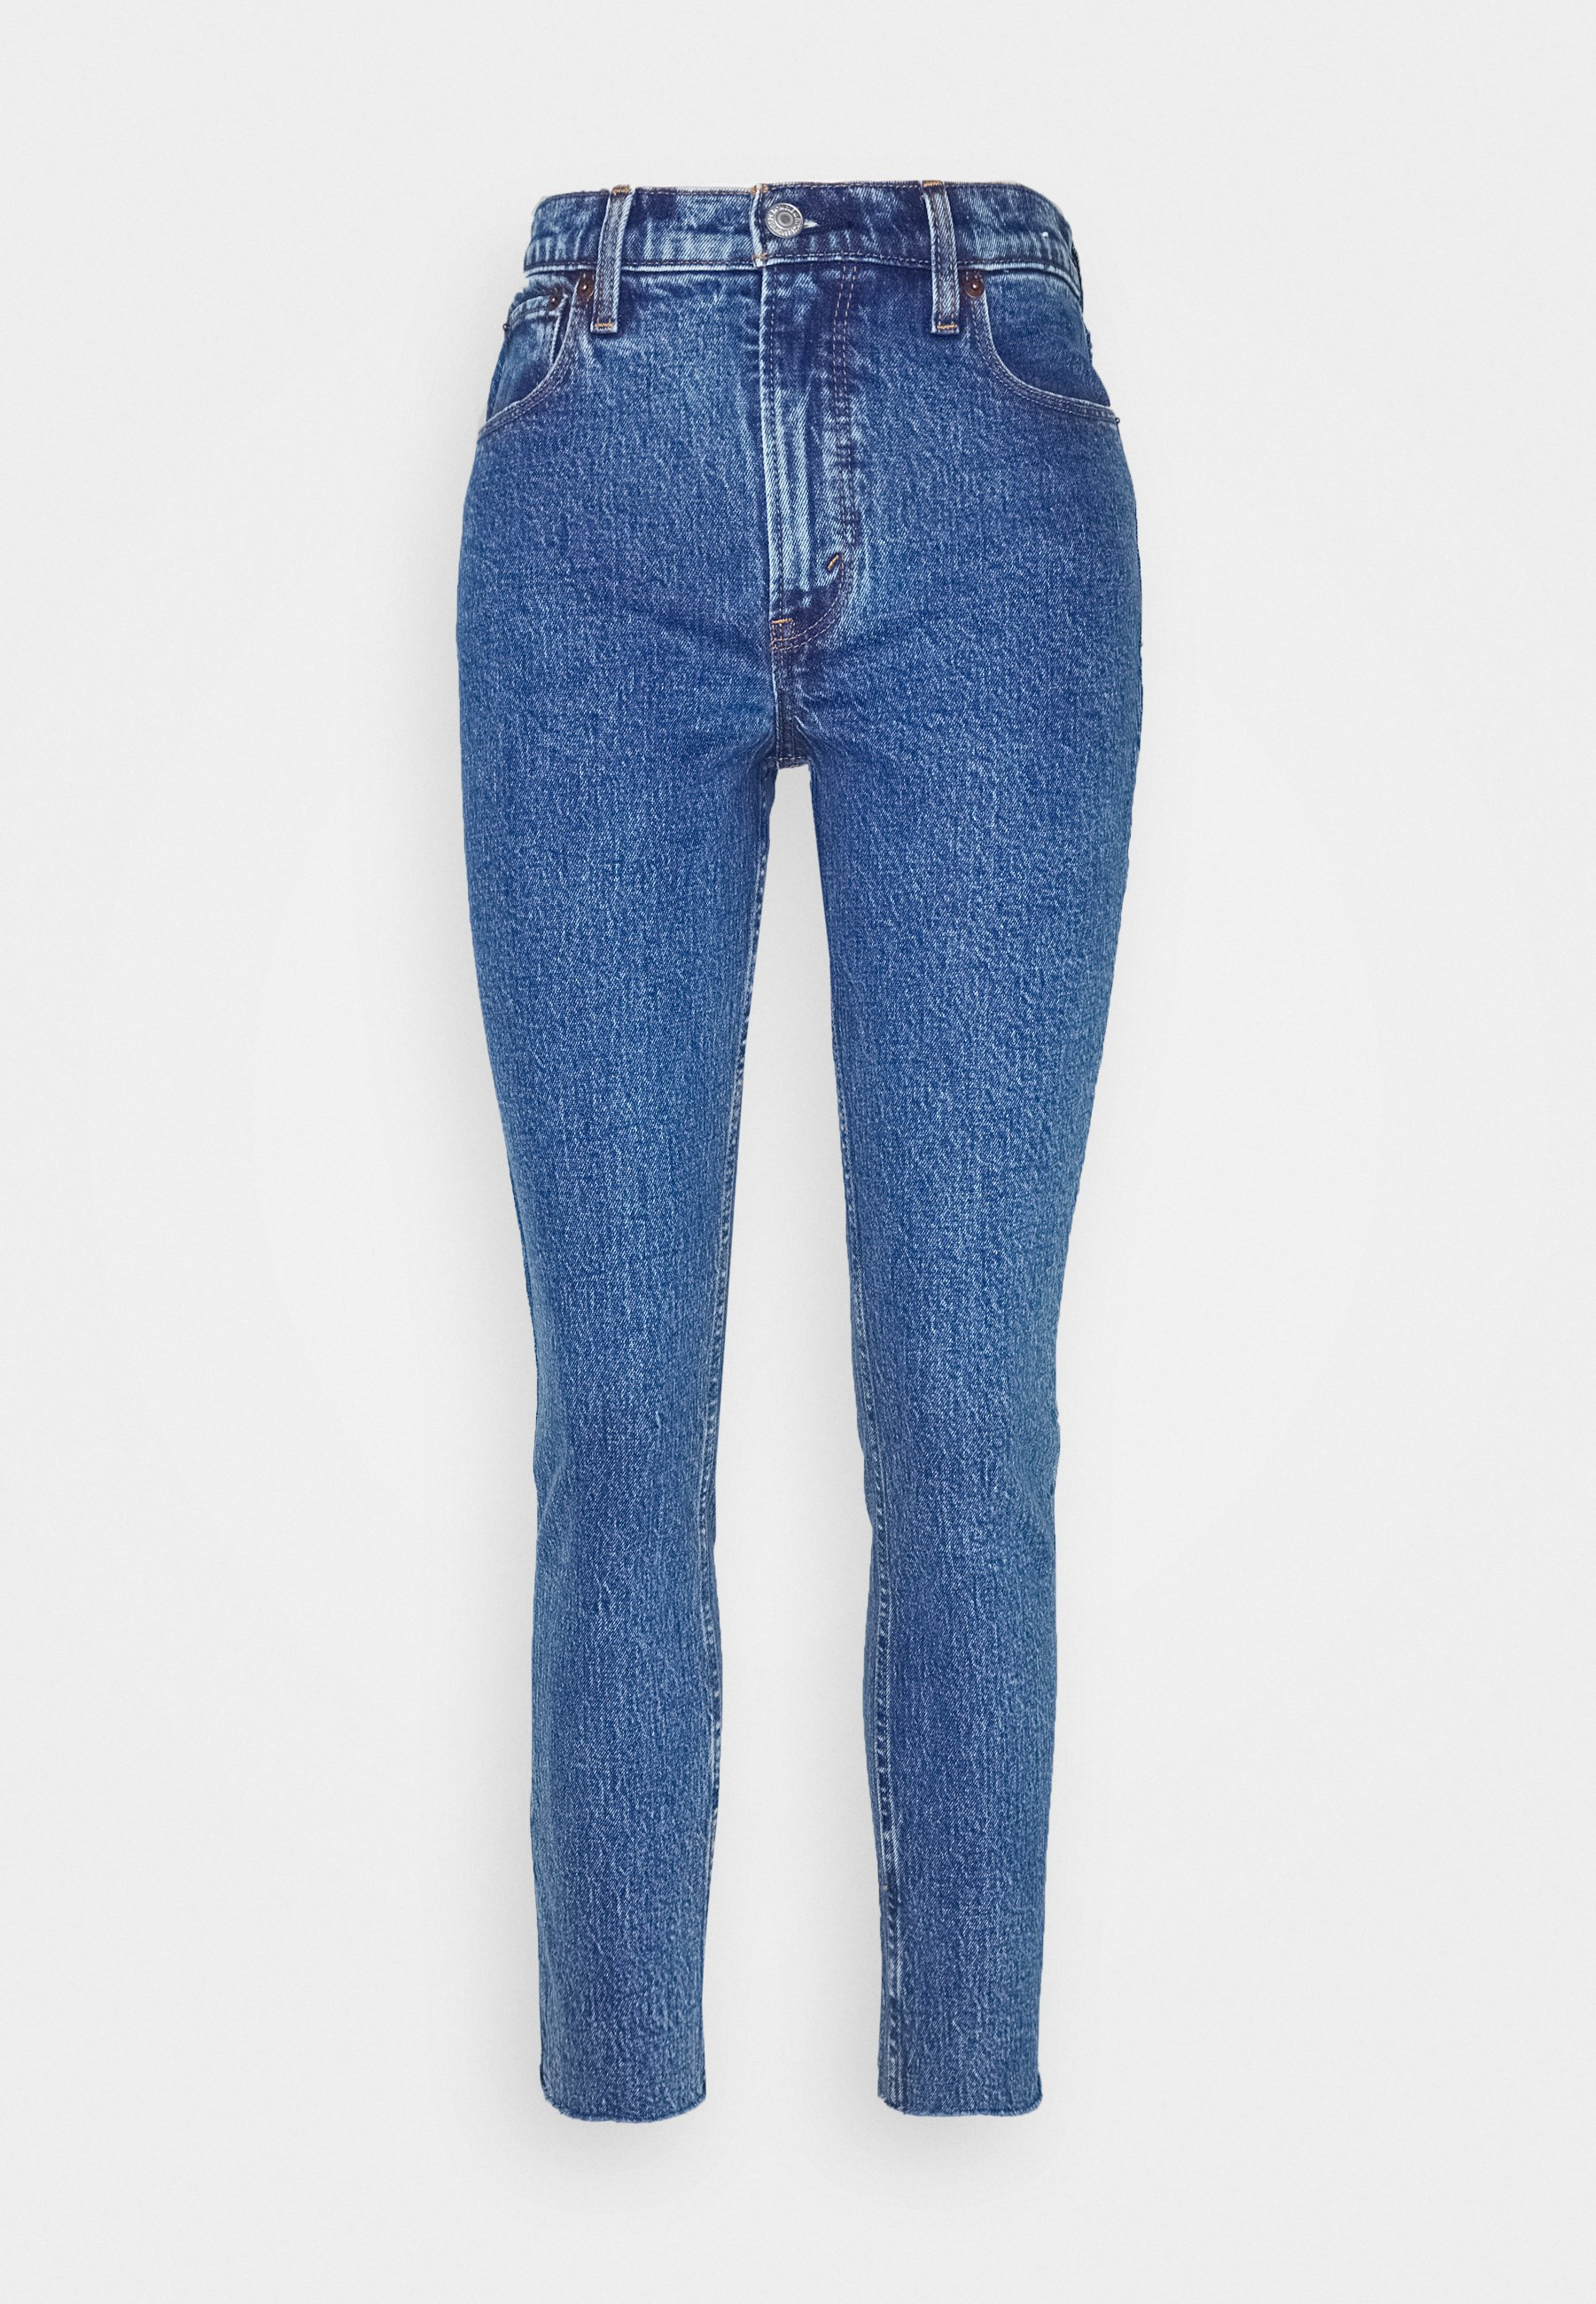 Abercrombie & Fitch Dark Marbled - Jeans Skinny Fit